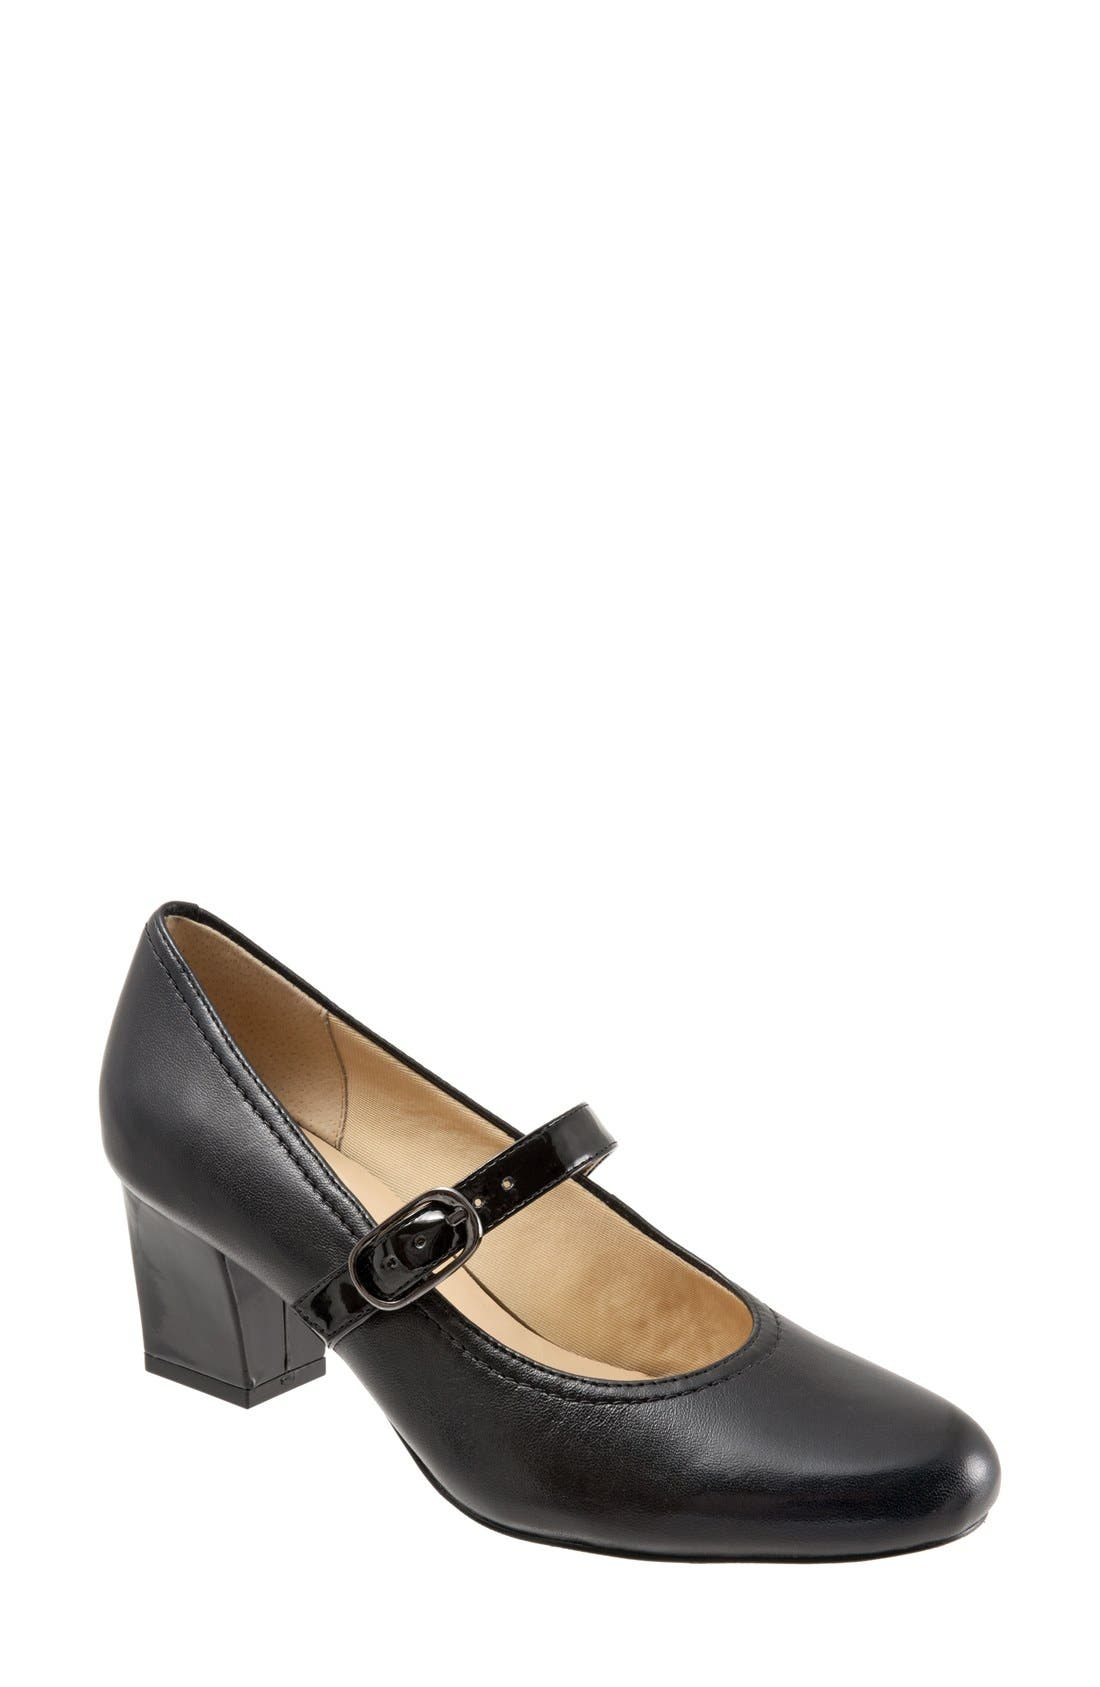 Trotters 'Candice' Mary Jane Pump (Women)